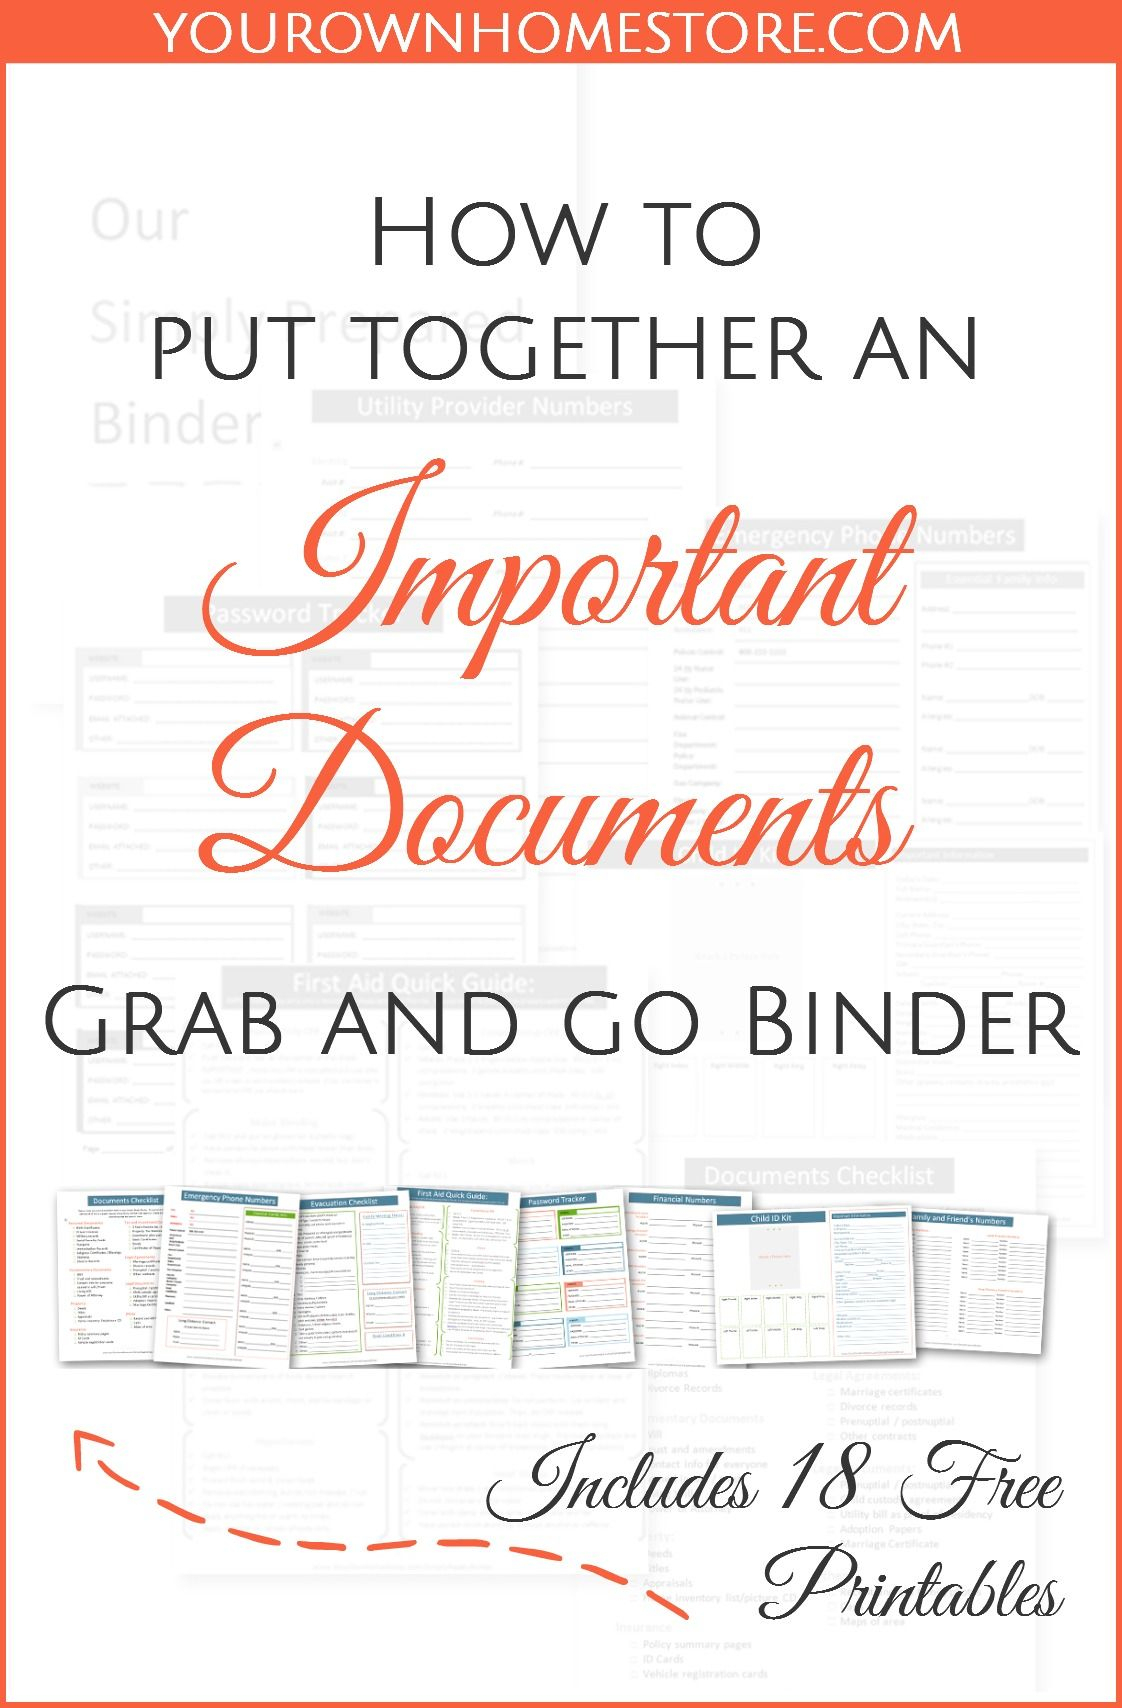 Documents For Emergencies | Evacuation | Put Together A Complete - Free Printable Documents